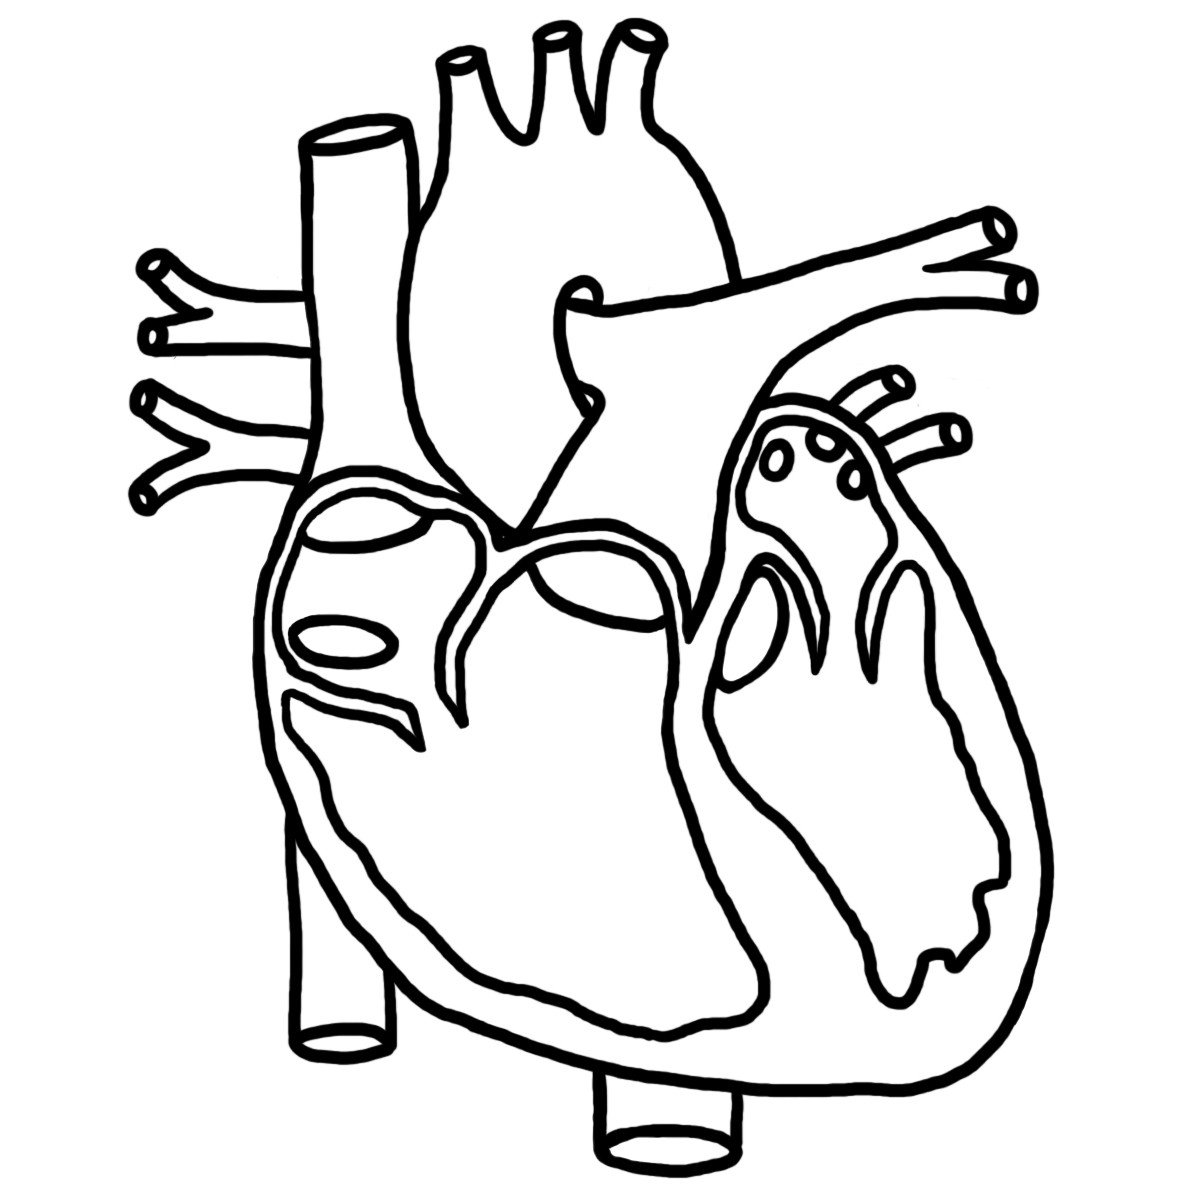 Heart Diagram Worksheet Blank Heart Diagram Blank Human Anatomy